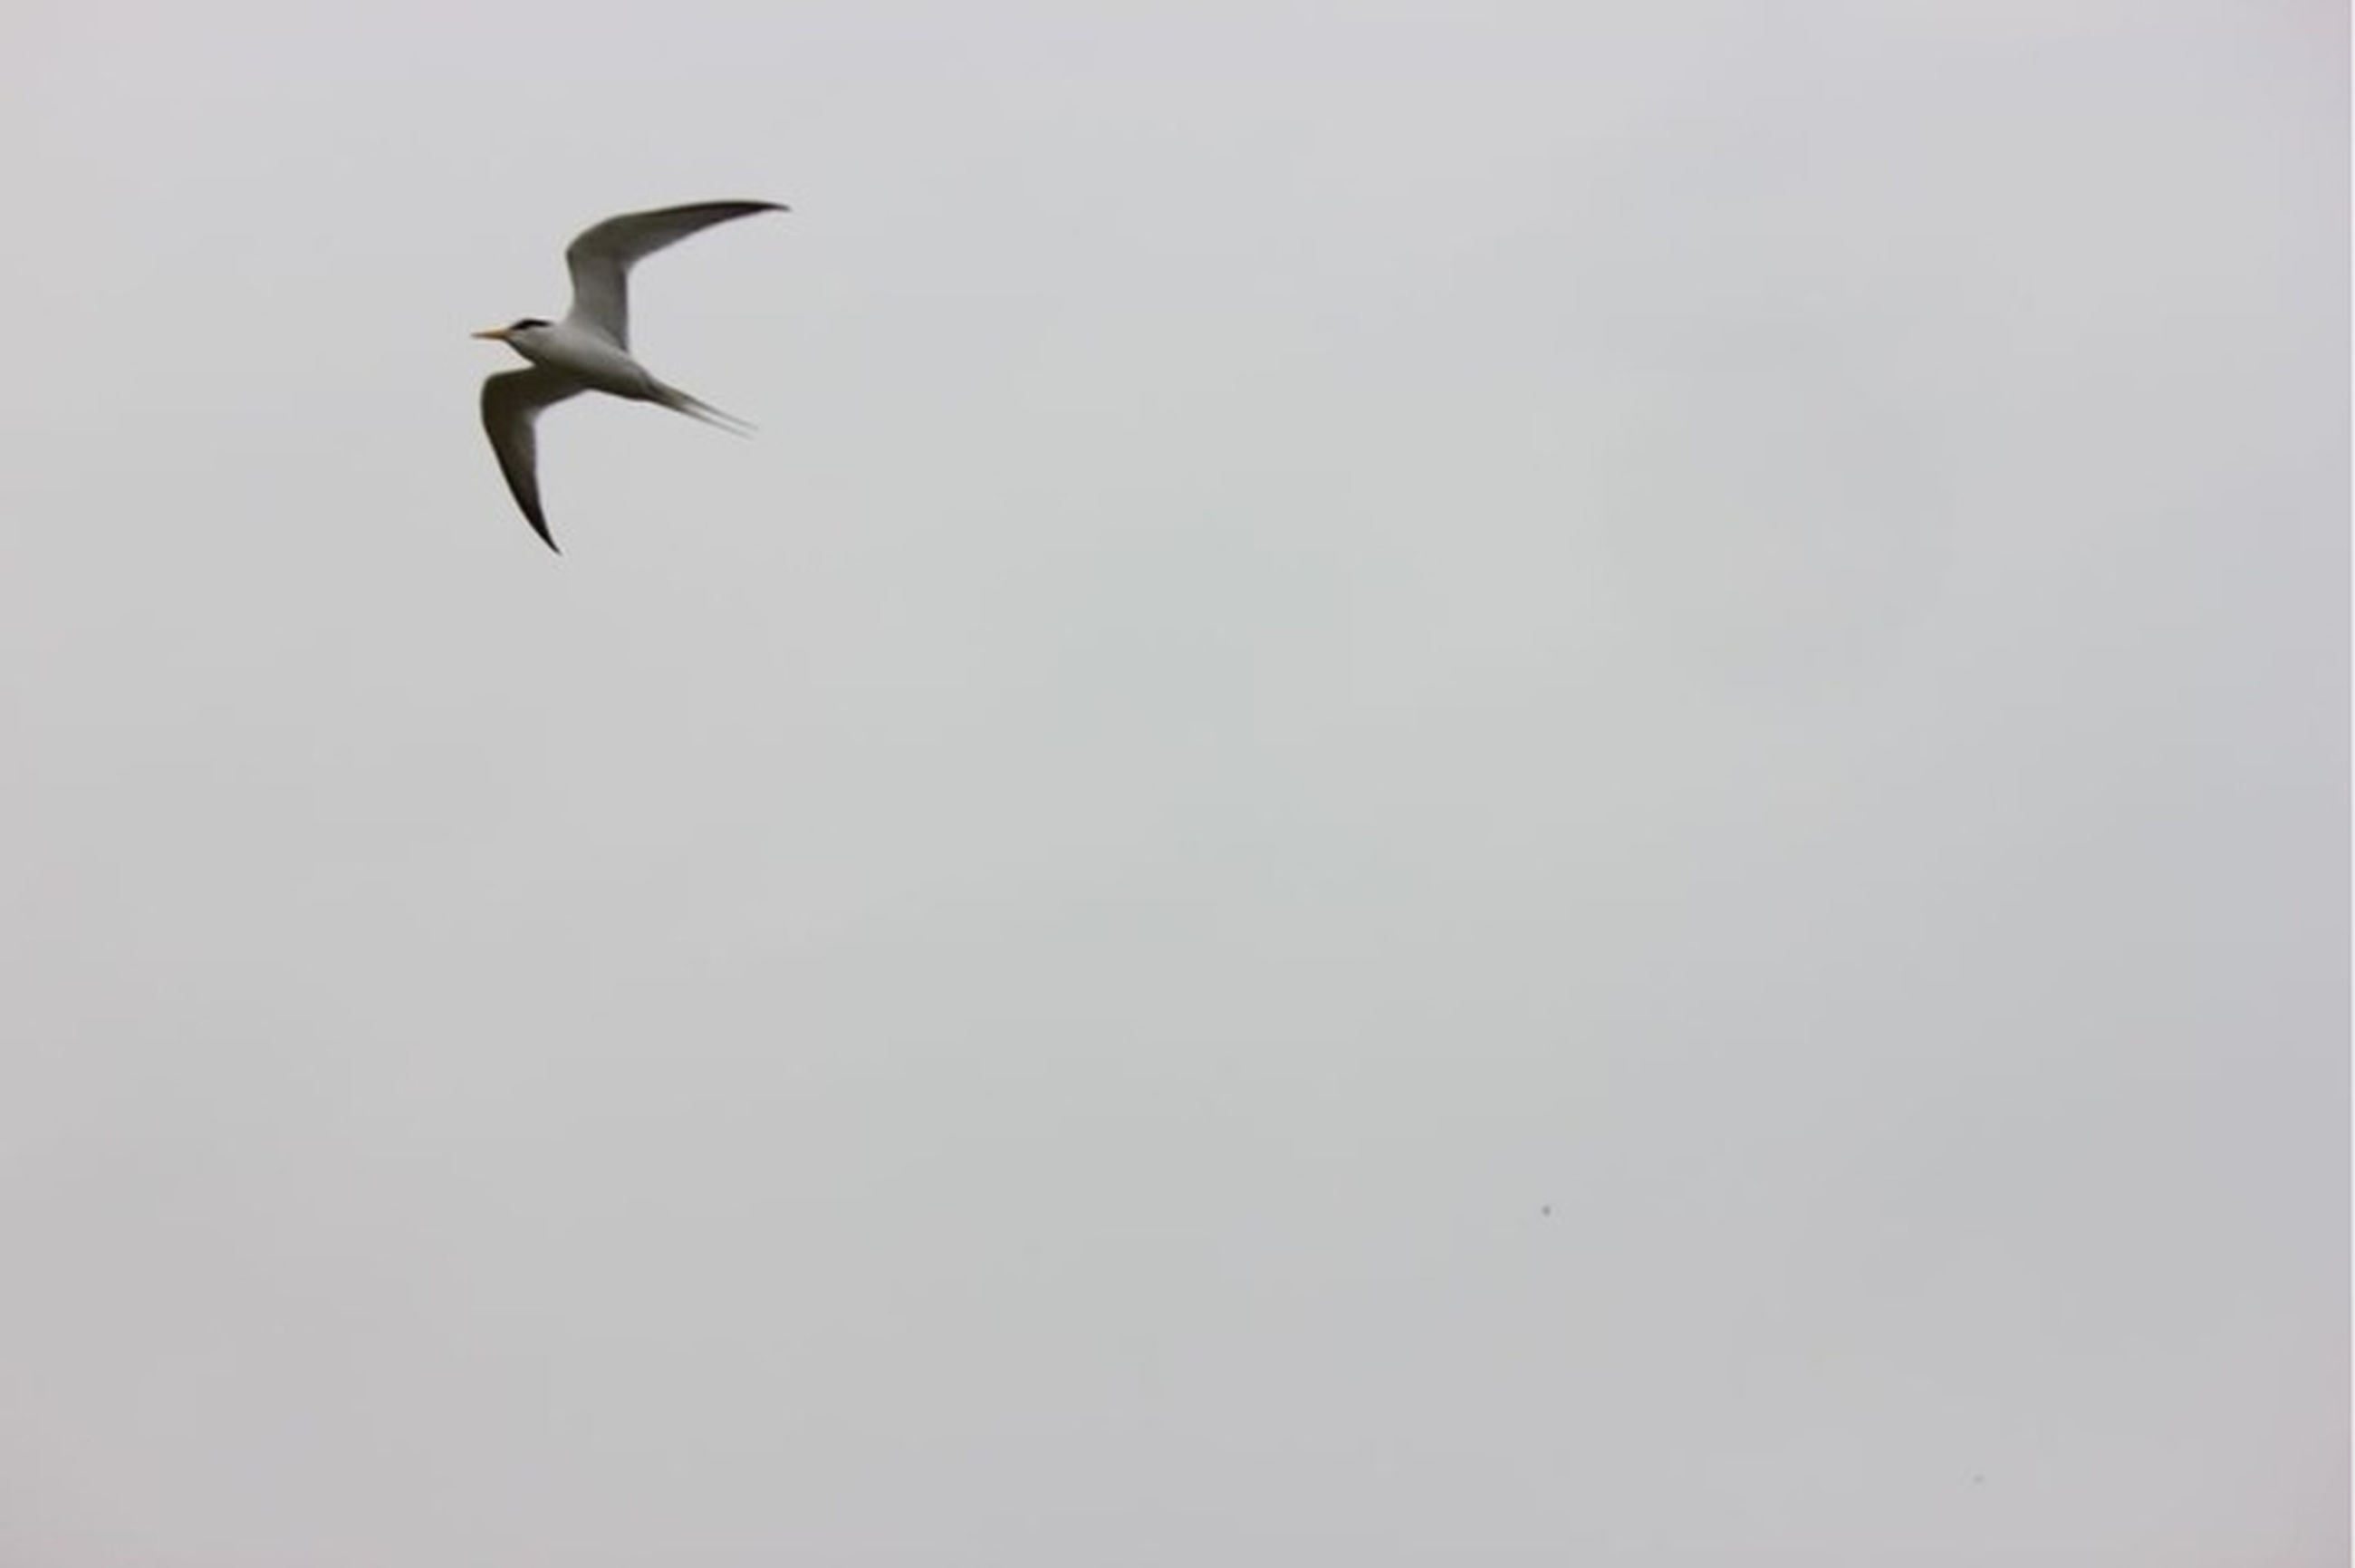 bird, animal themes, animals in the wild, wildlife, flying, one animal, spread wings, seagull, low angle view, clear sky, mid-air, copy space, nature, sky, zoology, avian, two animals, day, outdoors, beauty in nature